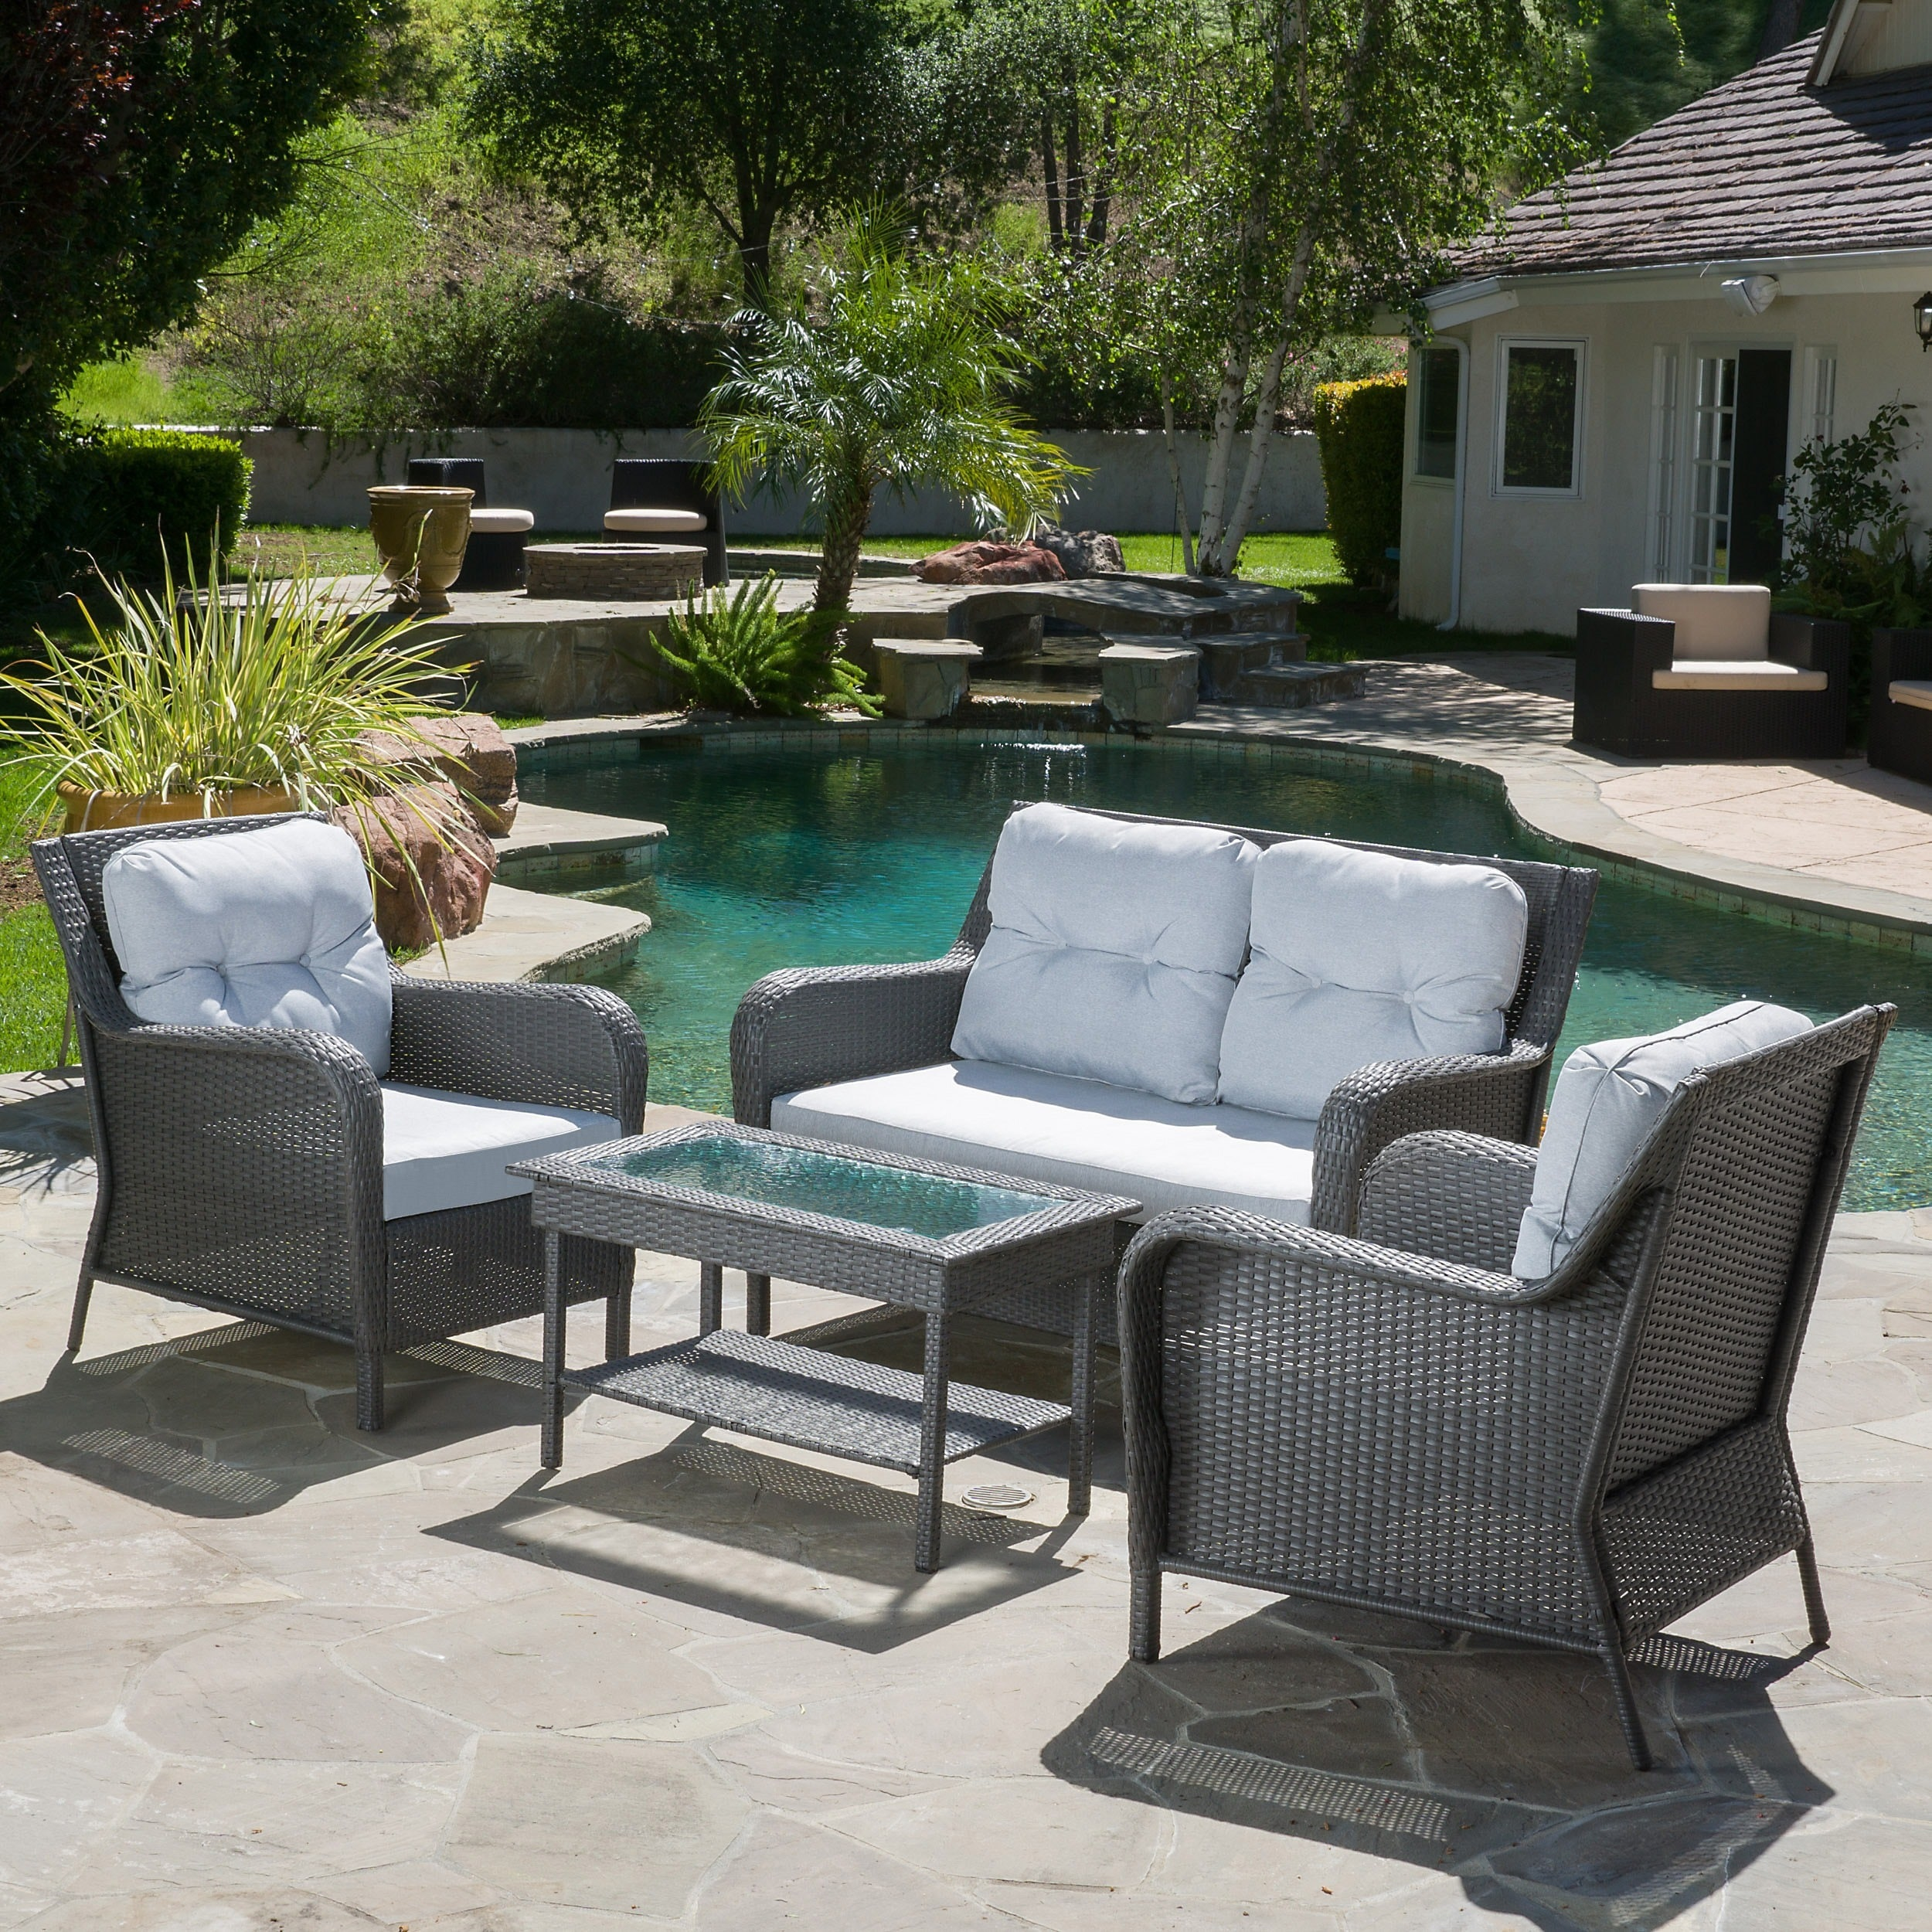 of furniture rustic chair full wicker chairs size tips patio conversation garden cleaning ventura outdoor piece set brown